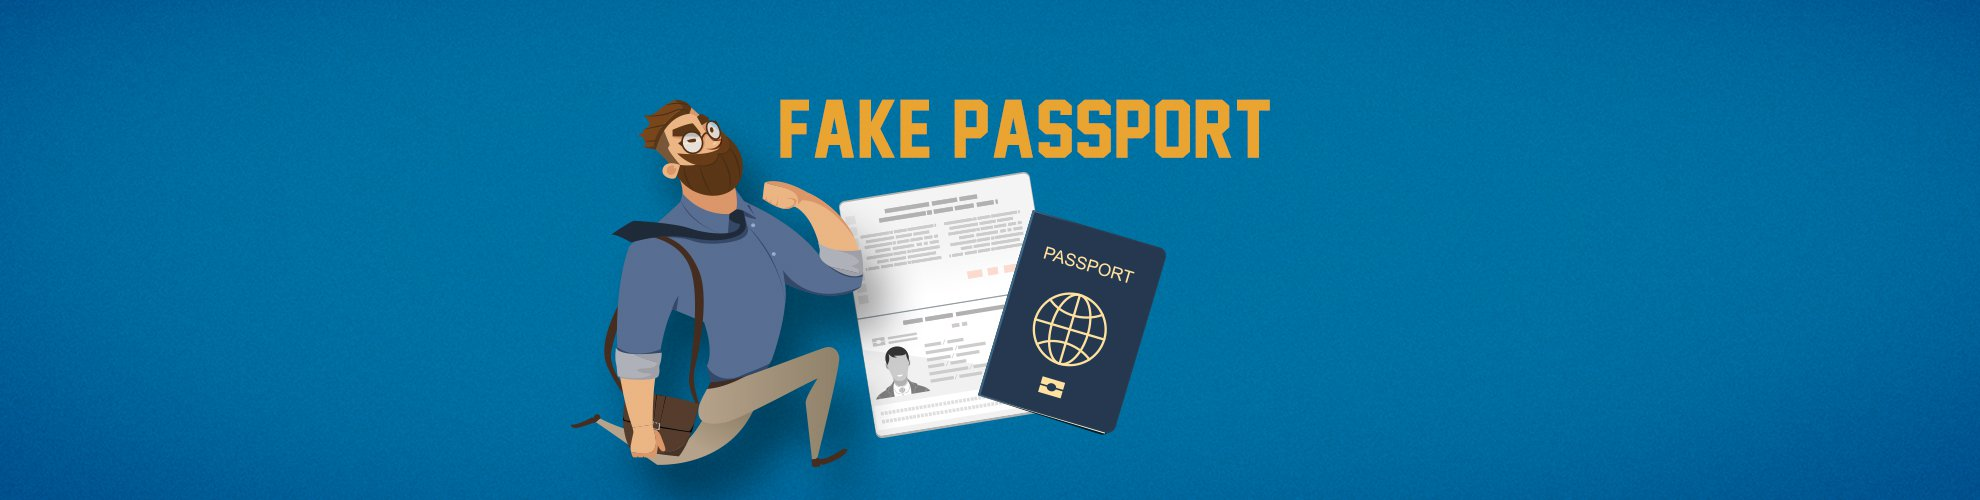 Fake Passport British